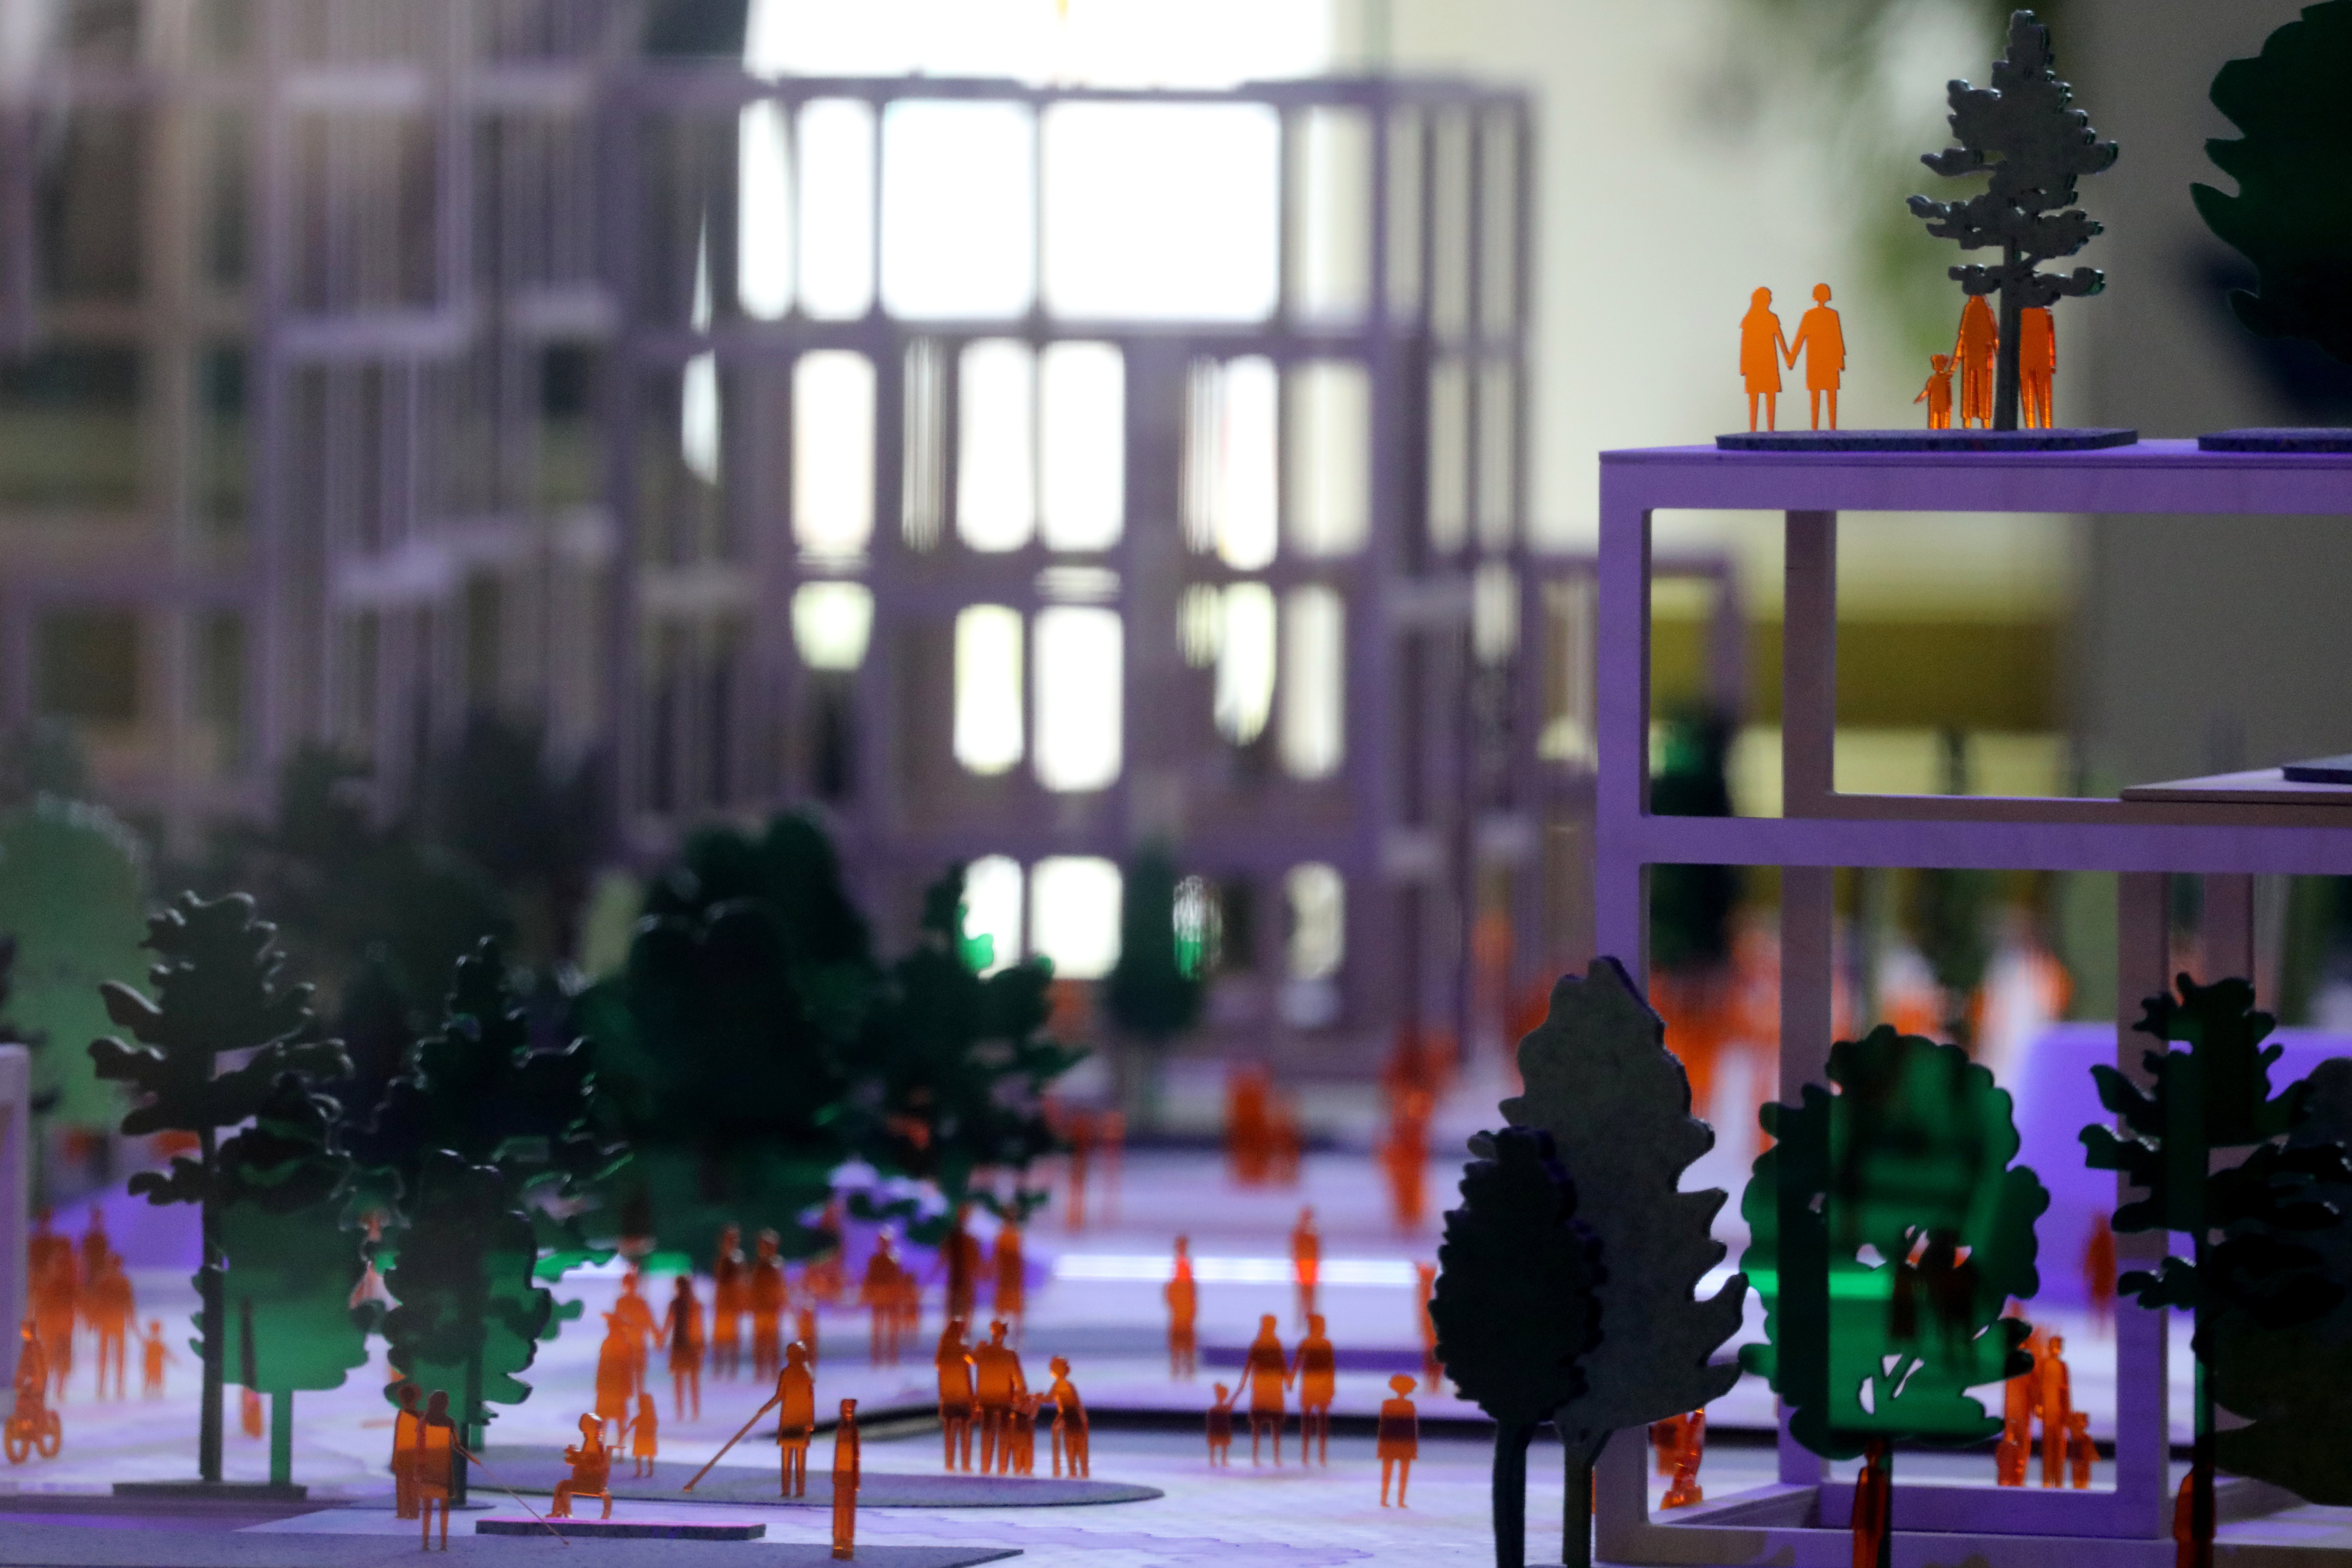 "Building models are seen at the offices of Alphabet's Sidewalk Labs ""smart city"" after the company announced it has pulled out of its project due to economic uncertainty in Toronto, Ontario, Canada May 7, 2020.  REUTERS/Chris Helgren - RC2VJG91RKAK"